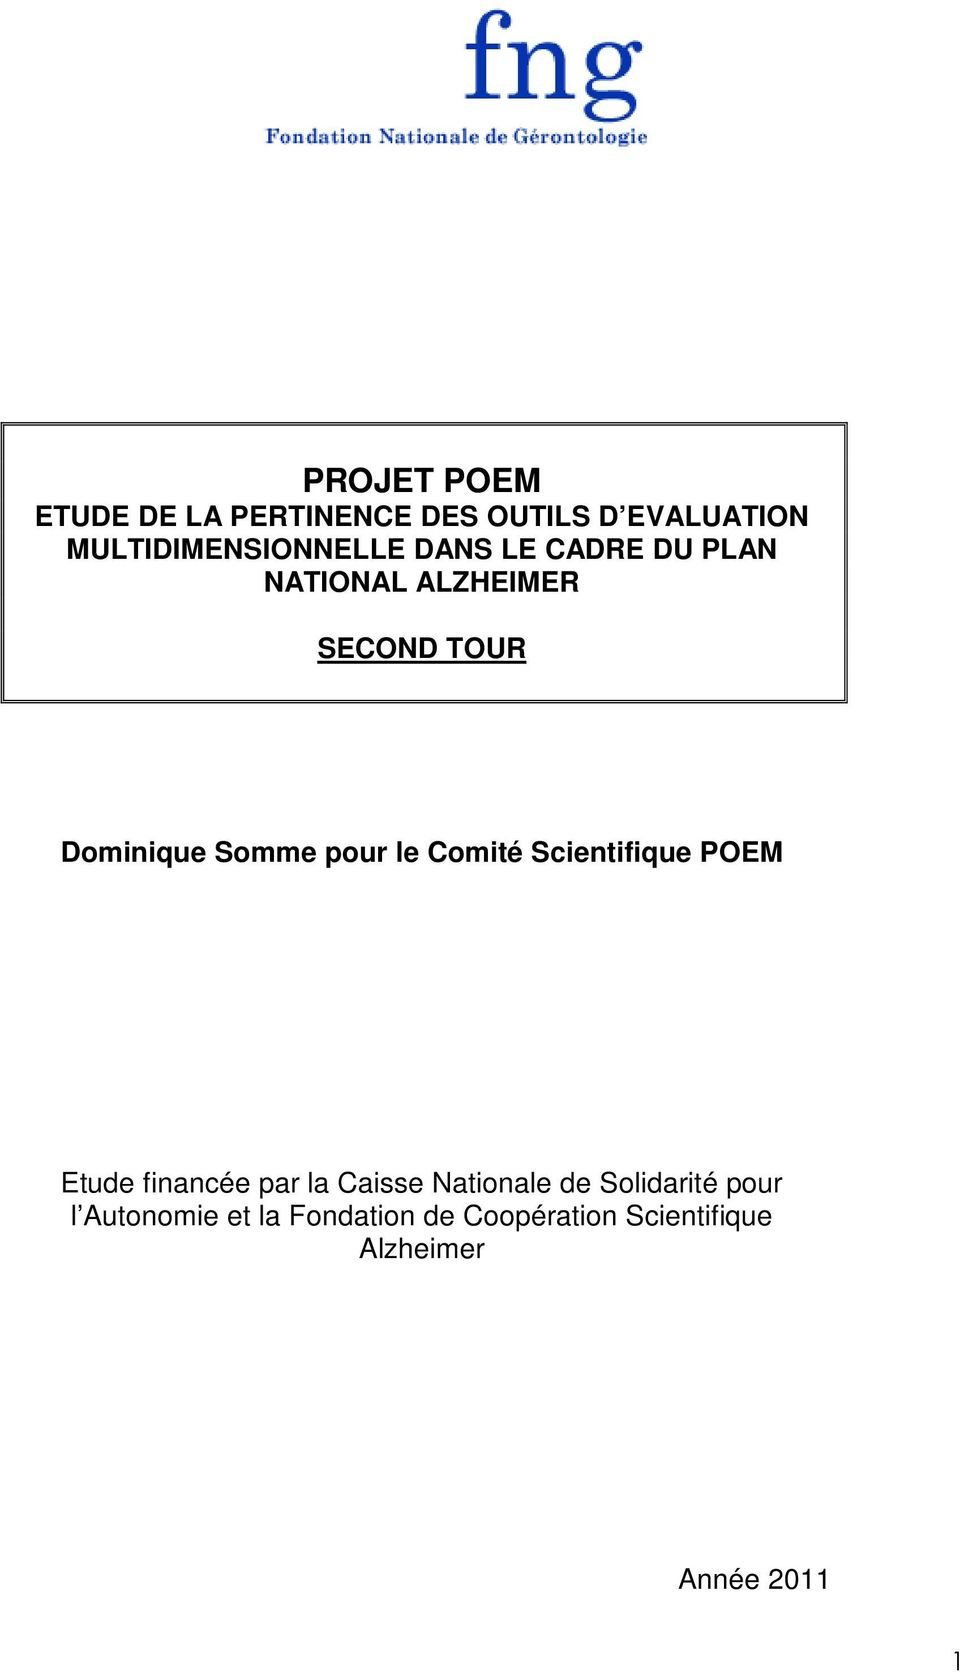 Comité Scientifique POEM Etude financée par la Caisse Nationale de Solidarité